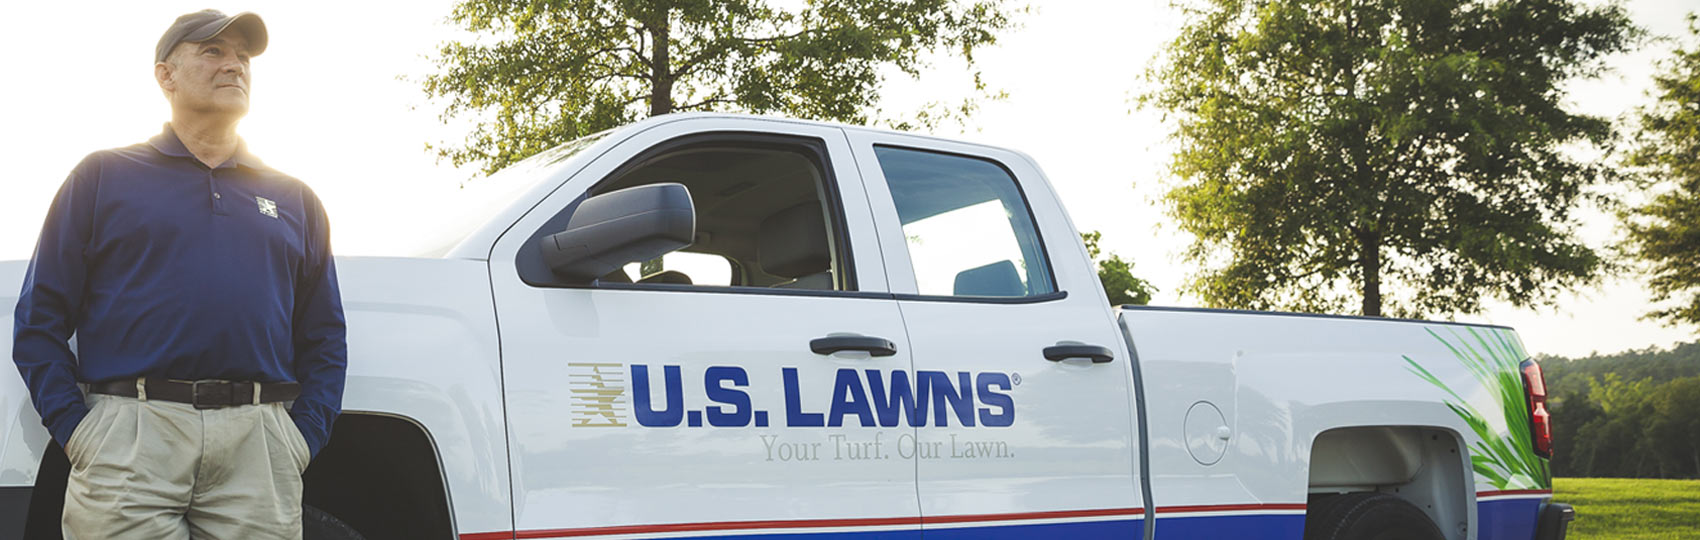 US Lawns Beaumont, landscaping Southeast Texas, landscaping Port Arthur, landscaping Orange Tx, landscaping Woodville, landscaping Jasper TX